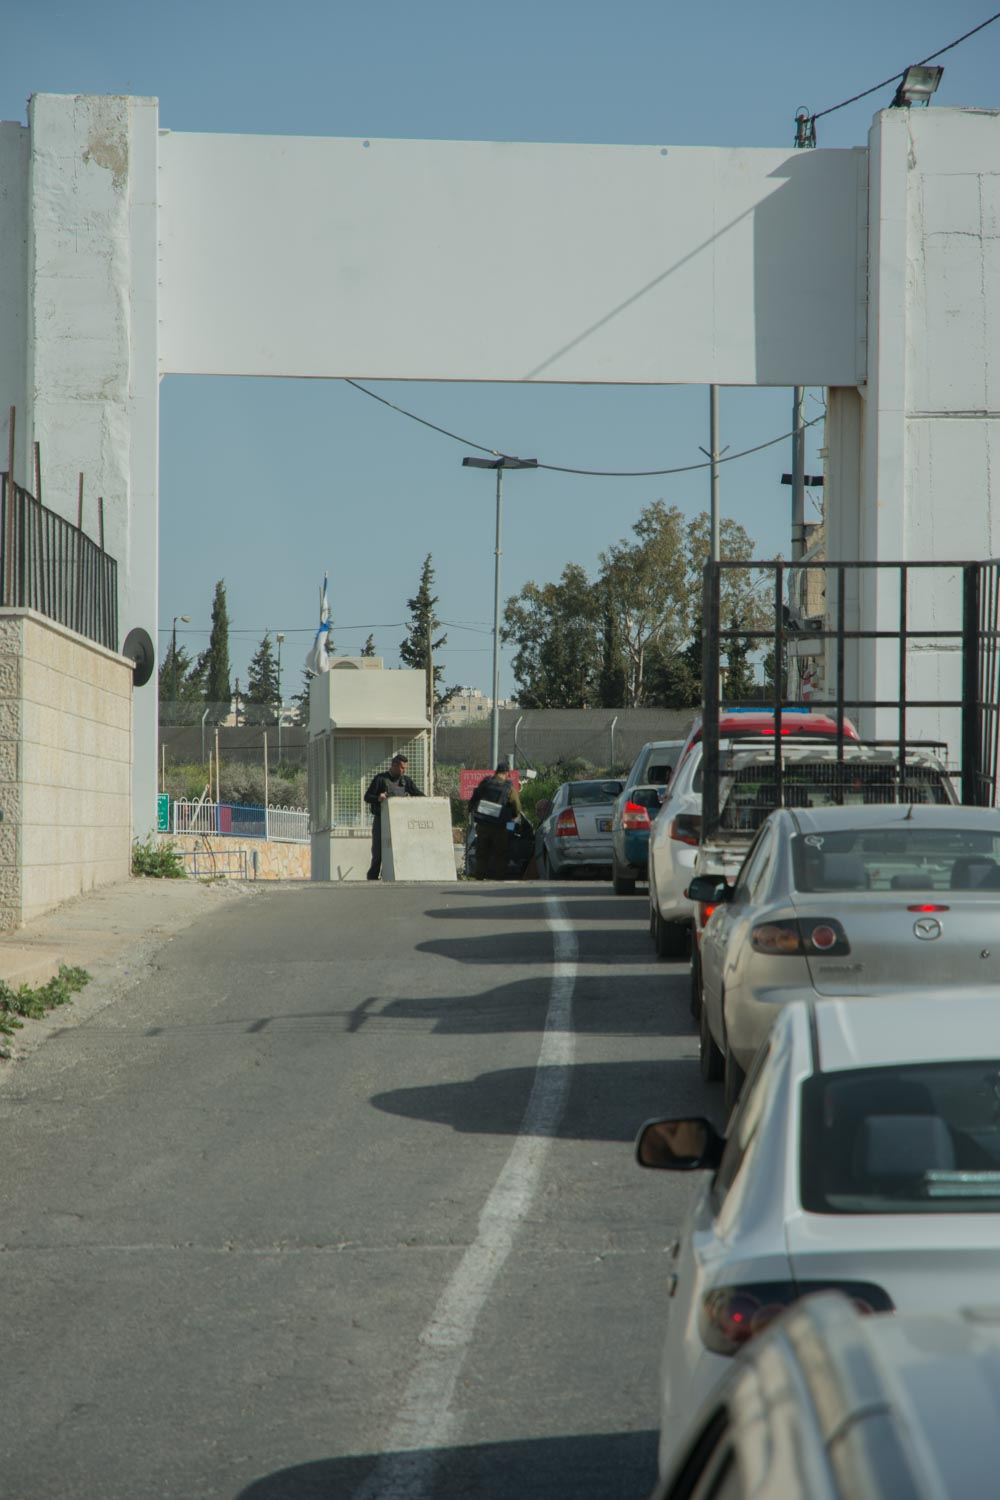 128. Checkpoint